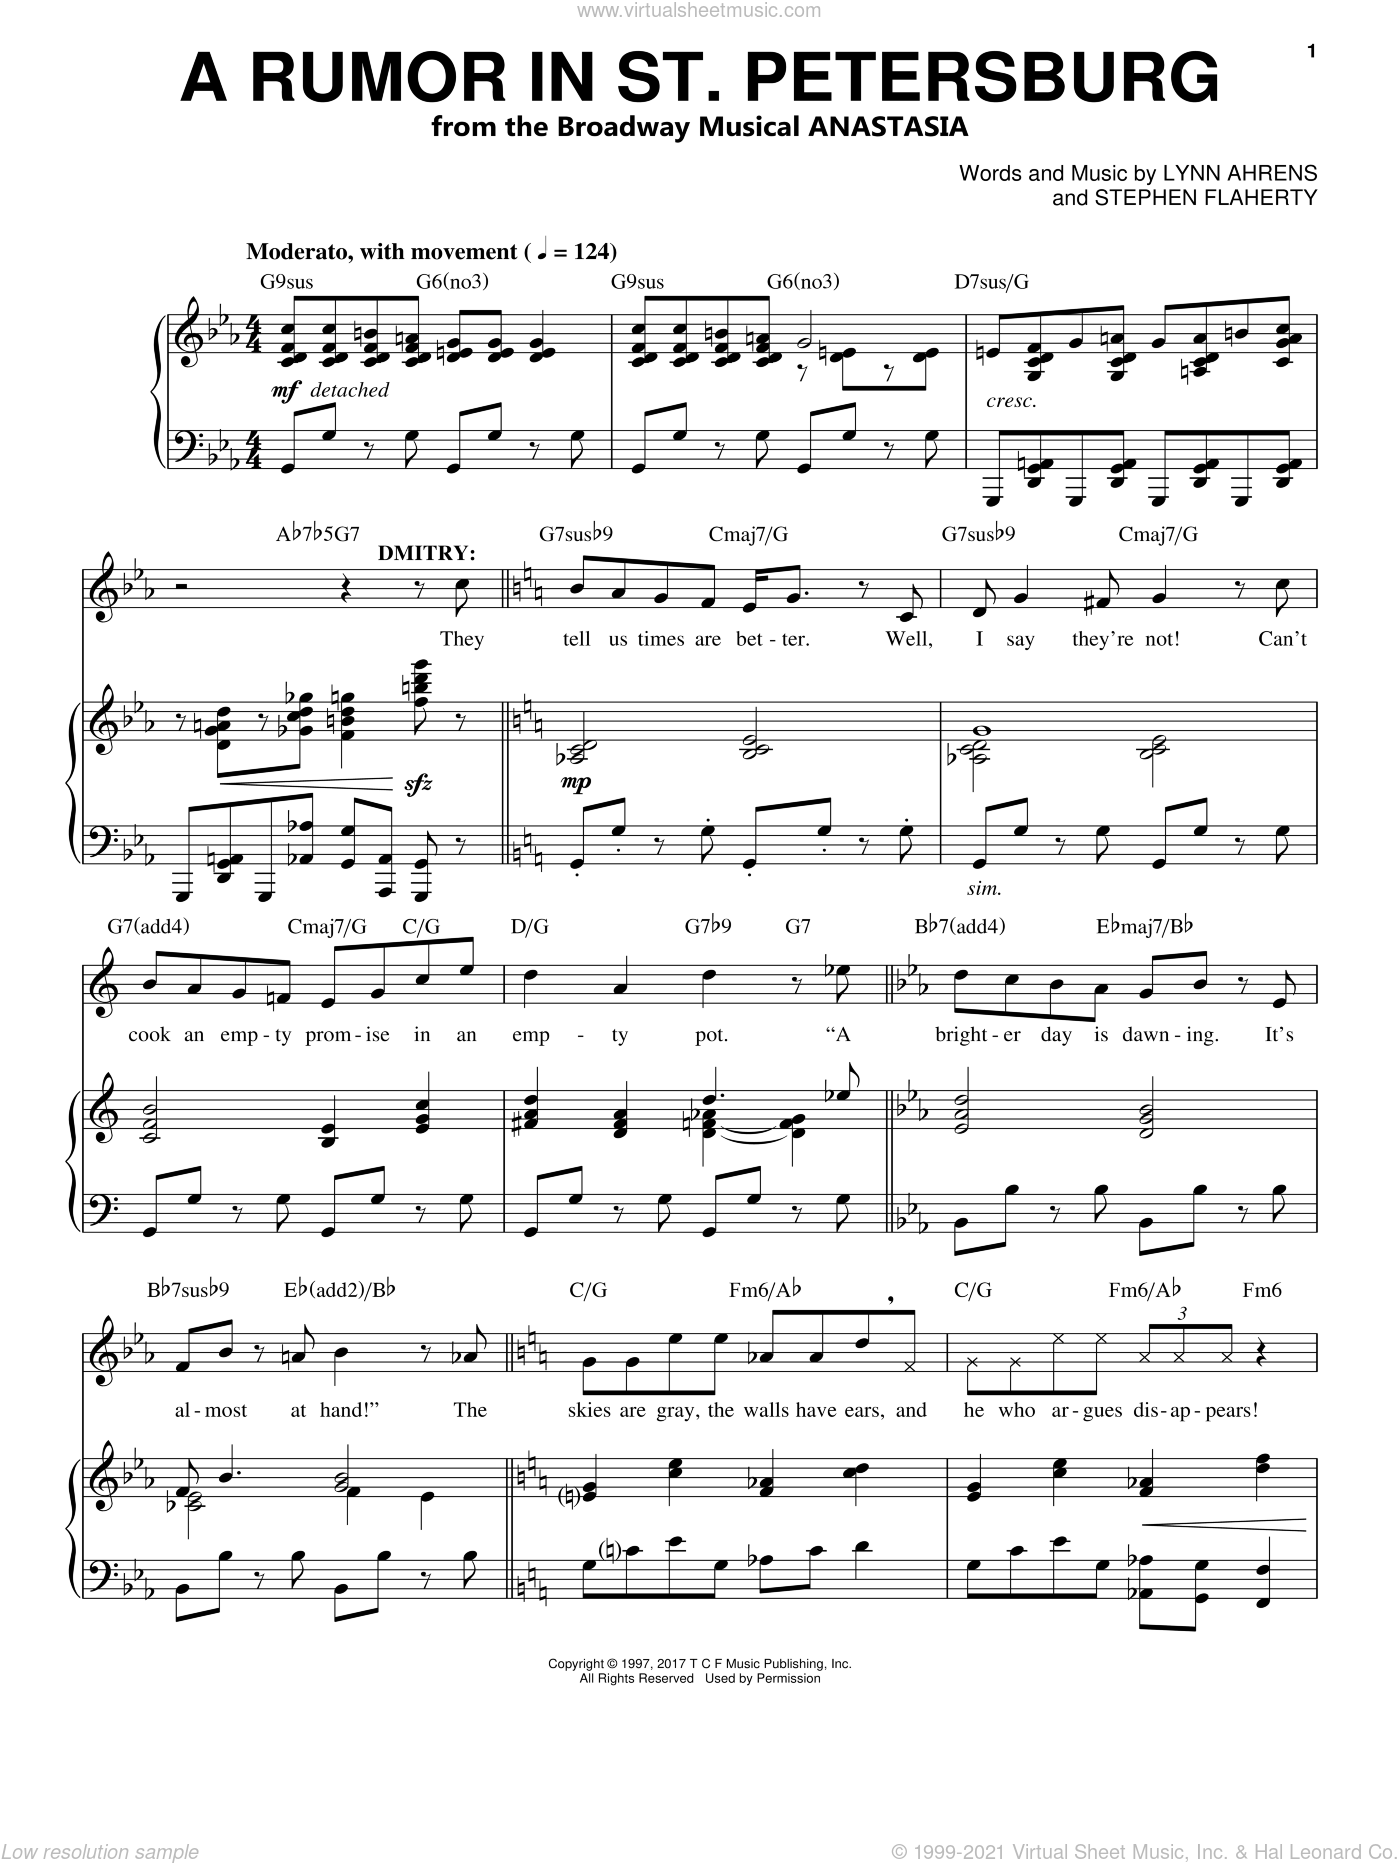 A Rumor In St. Petersburg sheet music for voice and piano by Stephen Flaherty and Lynn Ahrens, intermediate. Score Image Preview.